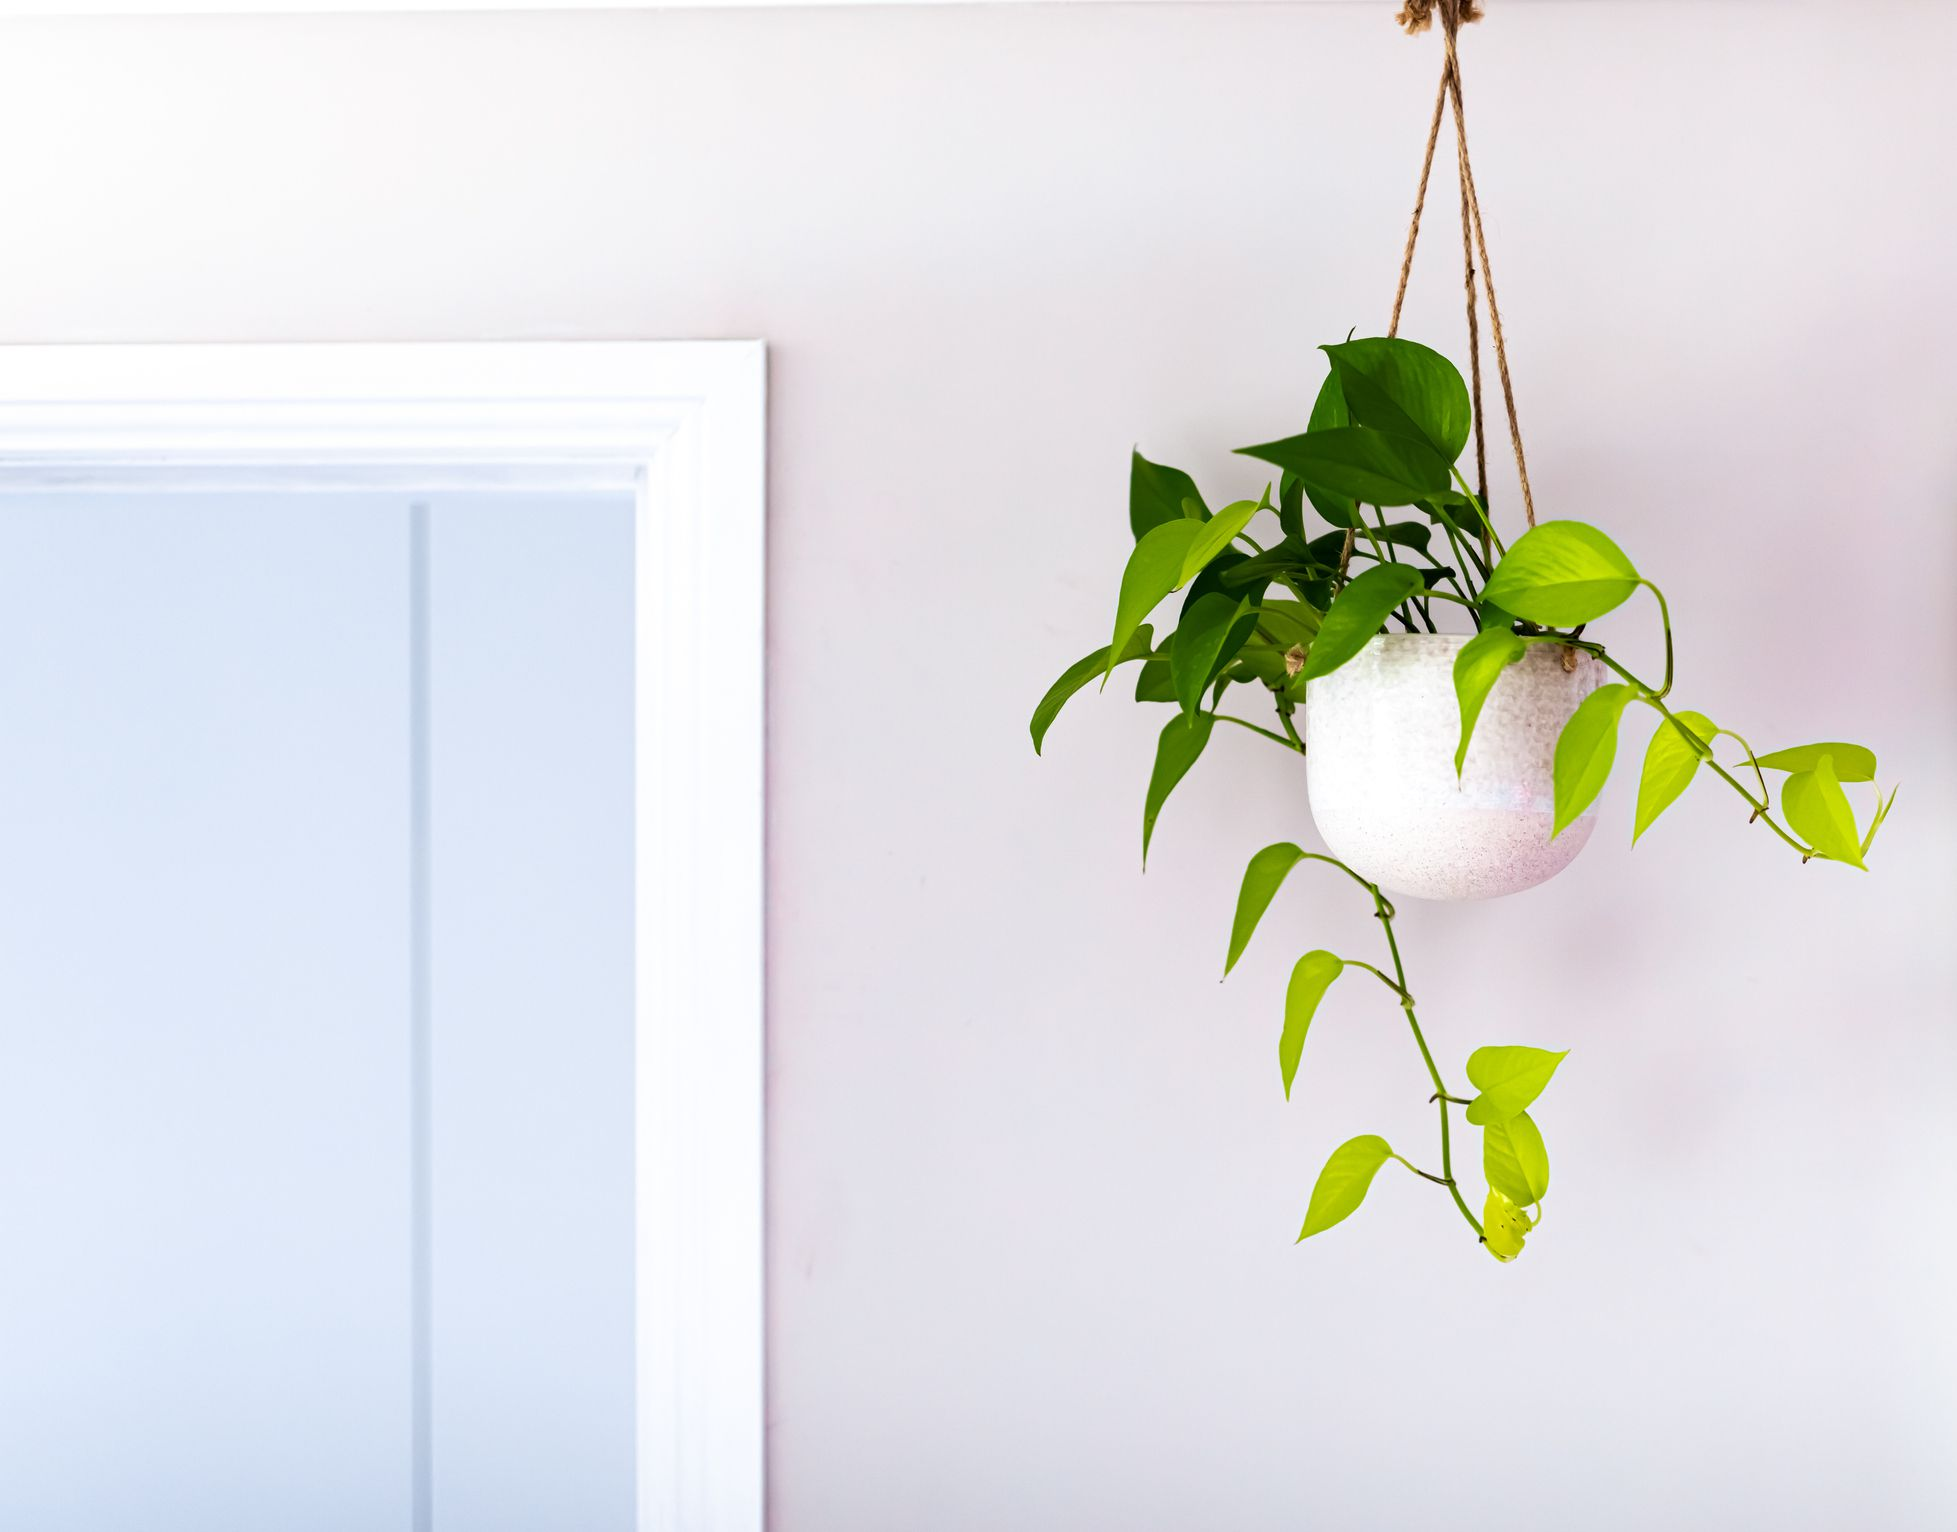 A trailing ivy plant in a white pot suspended from the ceiling